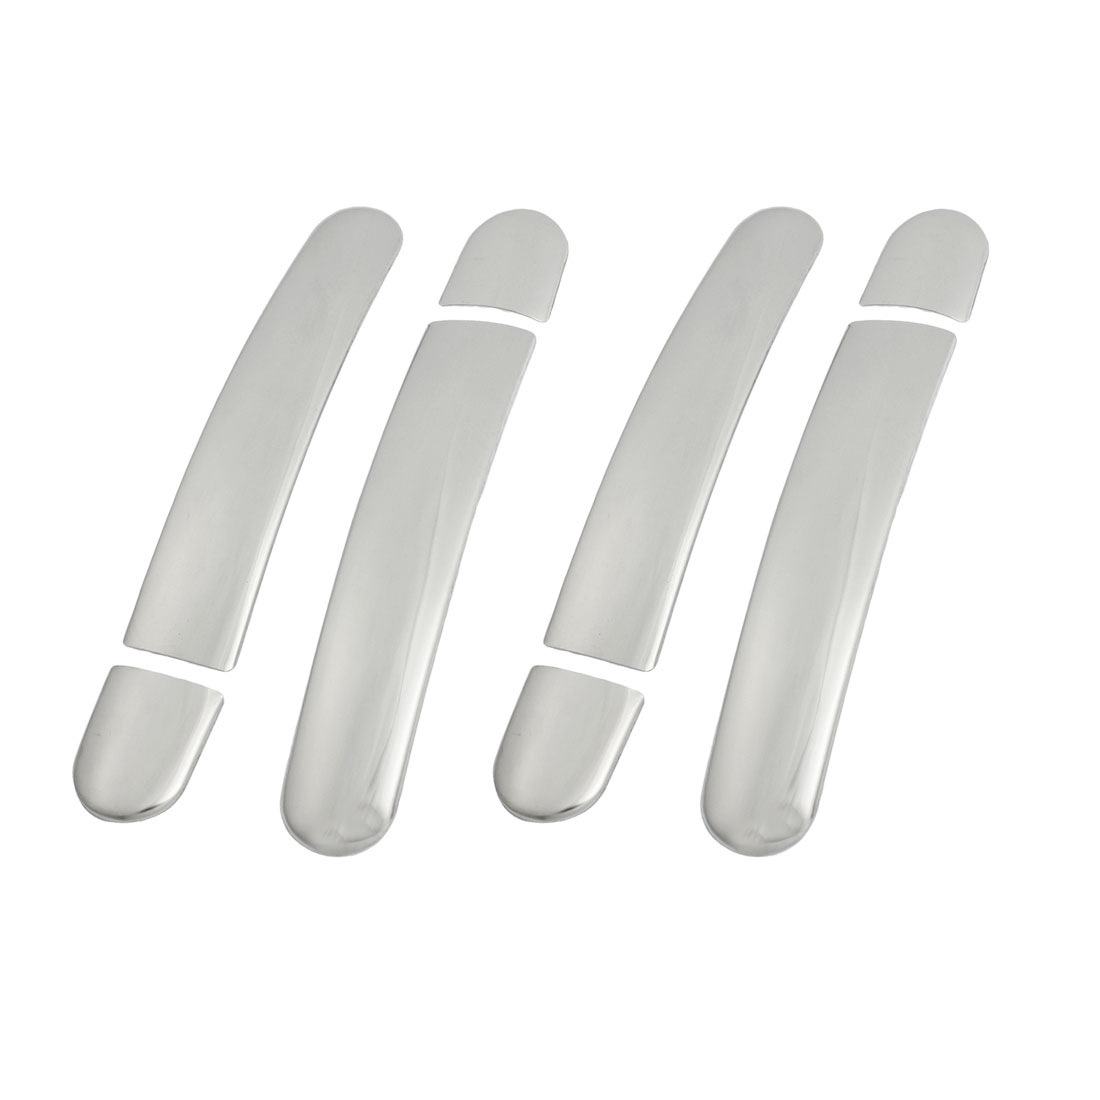 4 Pcs Auto Car Plastic Chrome Door Handle Cover Set for Volkswagen Tiguan